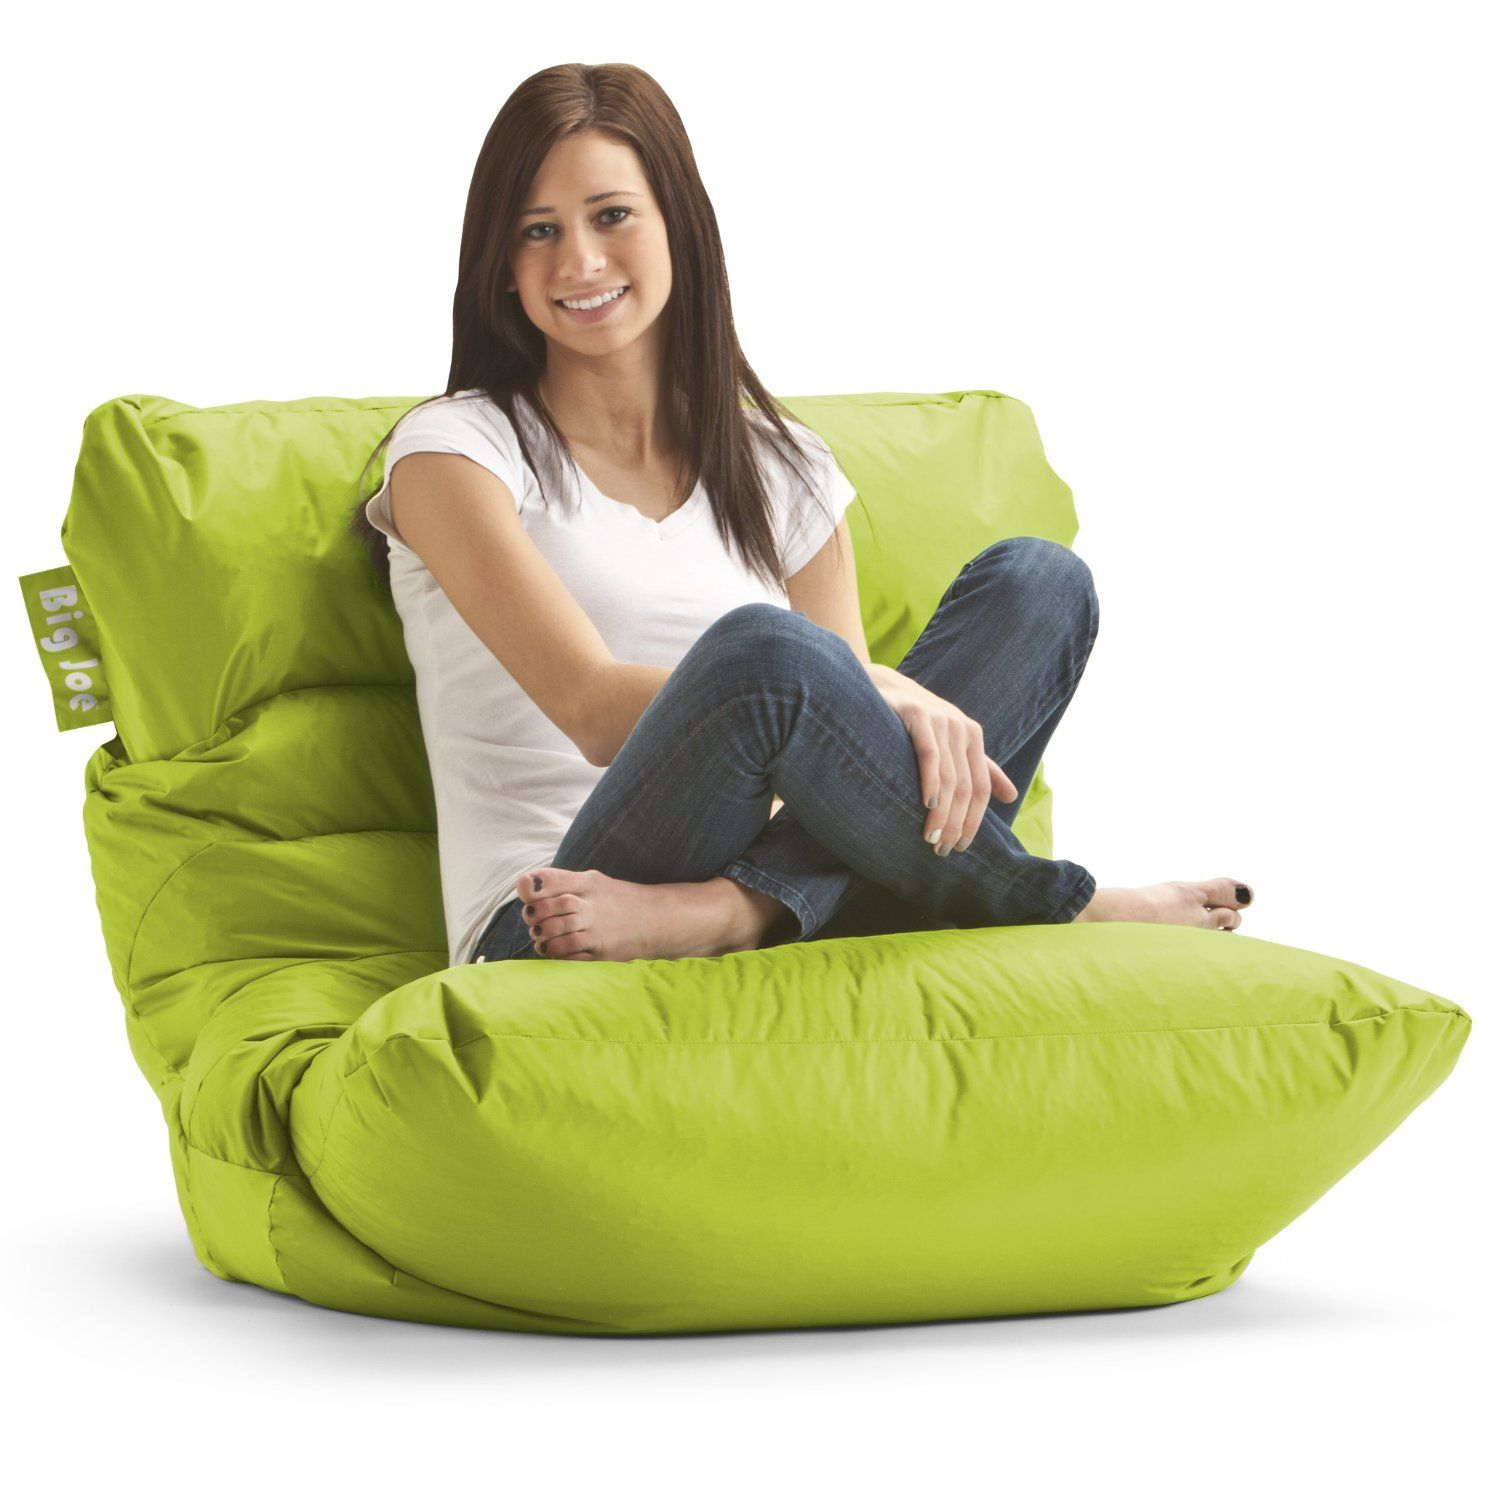 Bean bag chairs for teenage girls - Amazon Com Big Joe Roma Bean Bag Chair Spicy Lime Beanbag Chairs